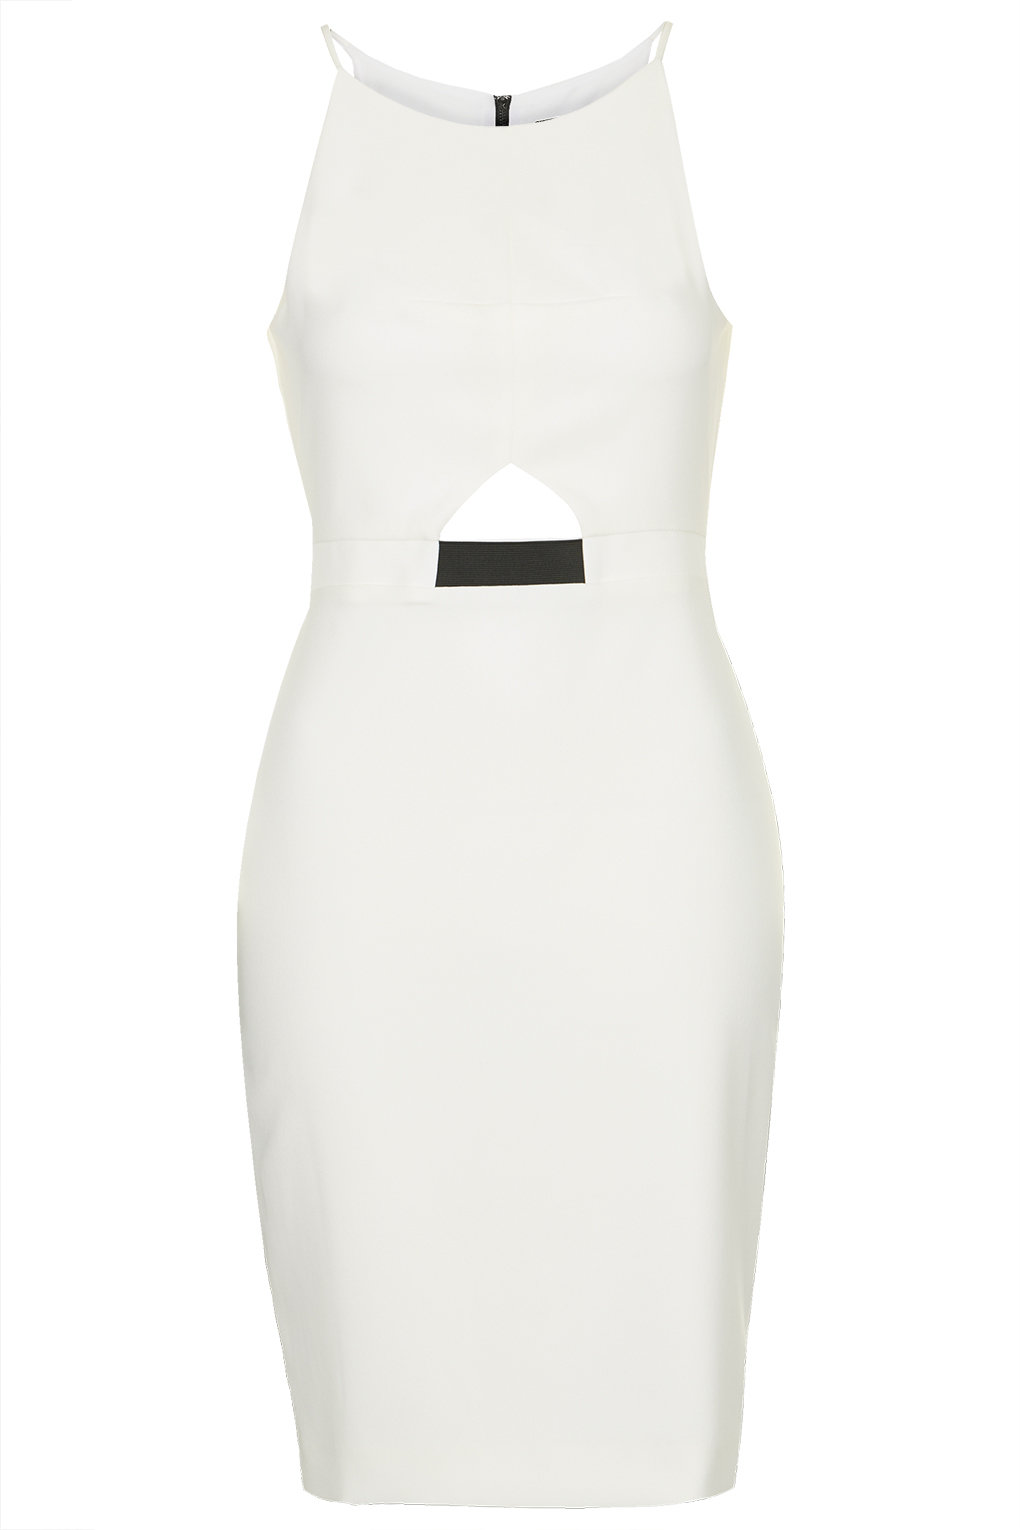 Out bodycon dress